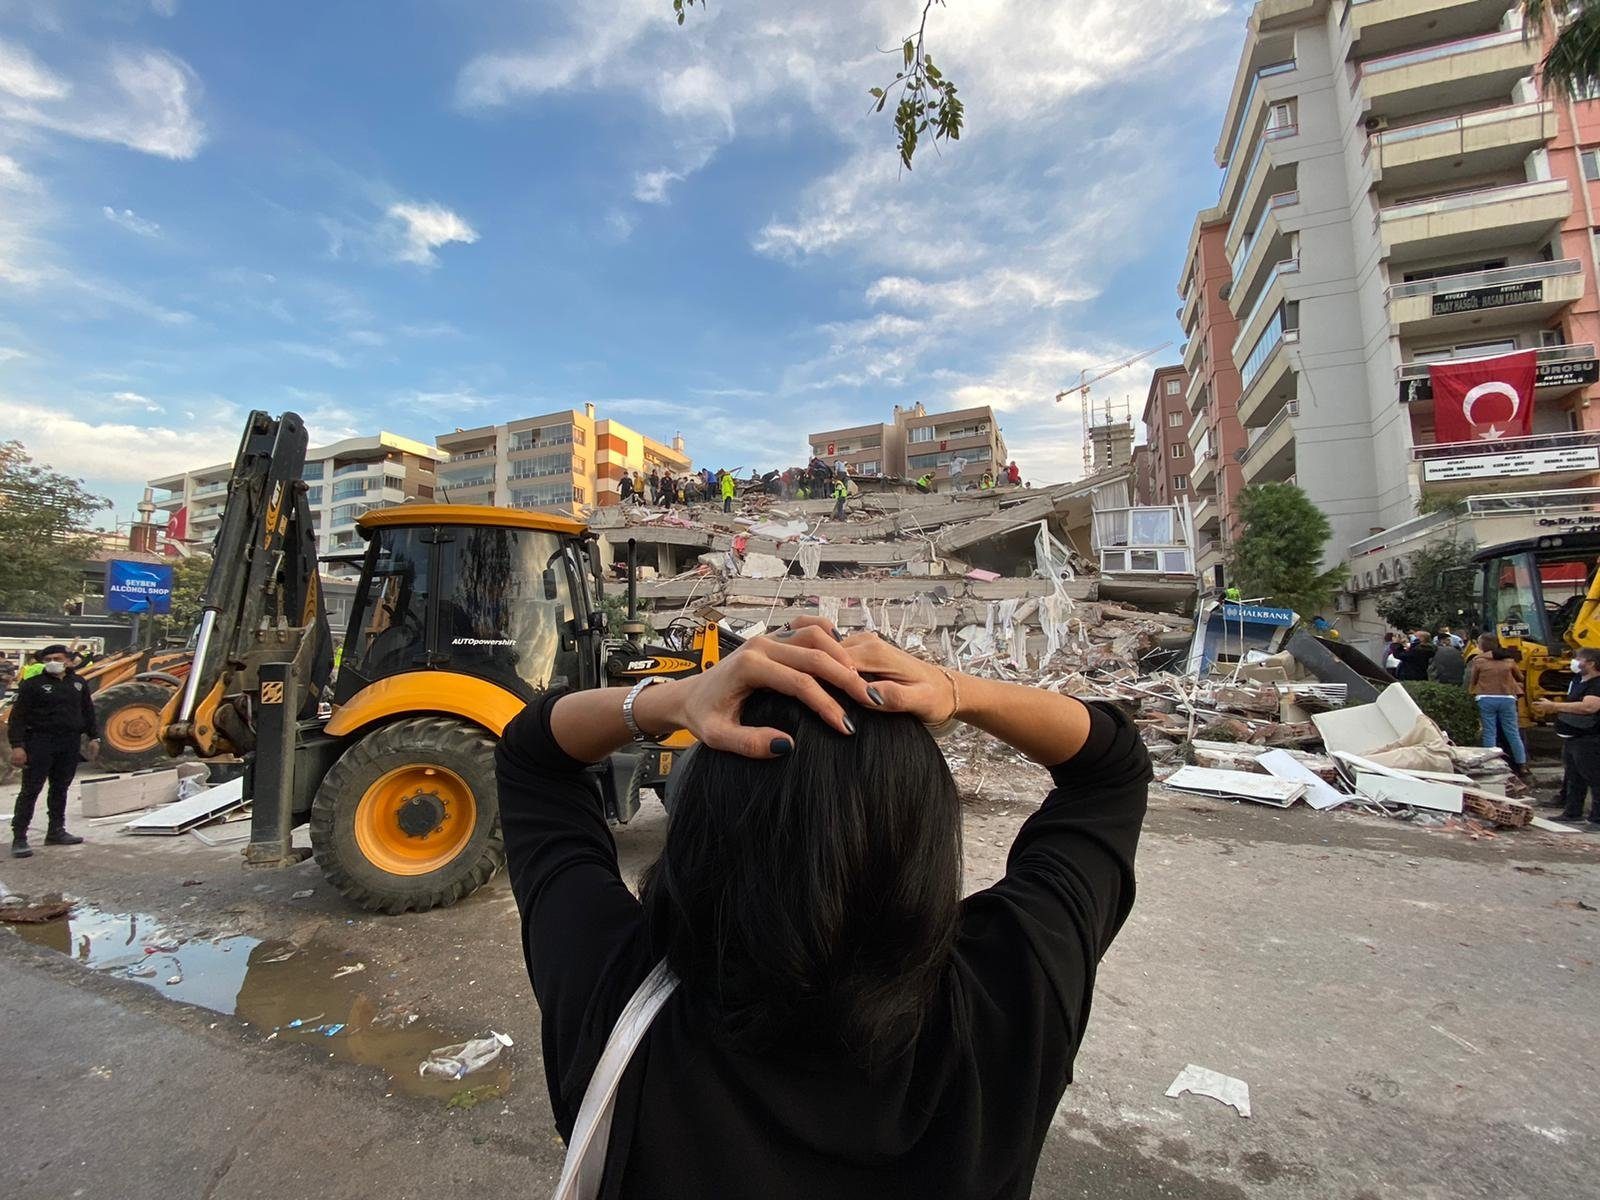 A woman looks at the rubble of a building, in Izmir, western Turkey, Oct. 30, 2020. (AA Photo)